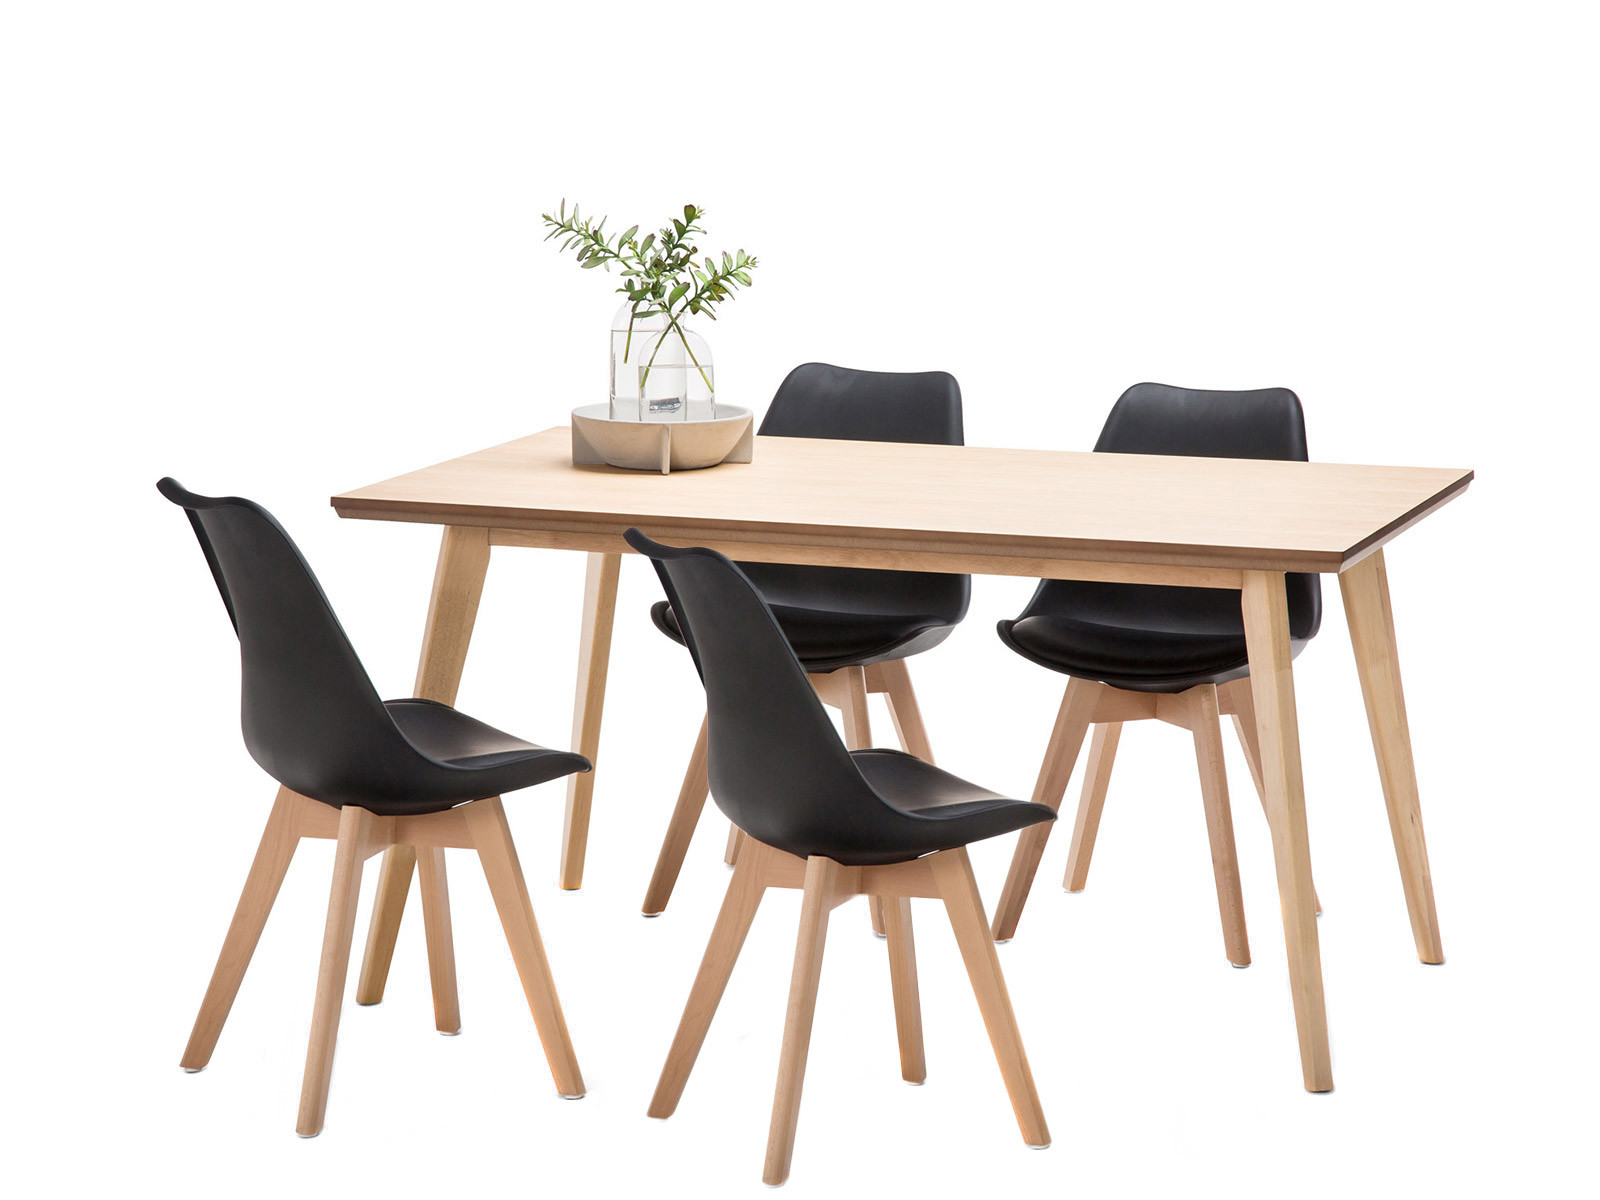 Wyatt Dining Table Set with 4 Padded Eames Replica Chairs